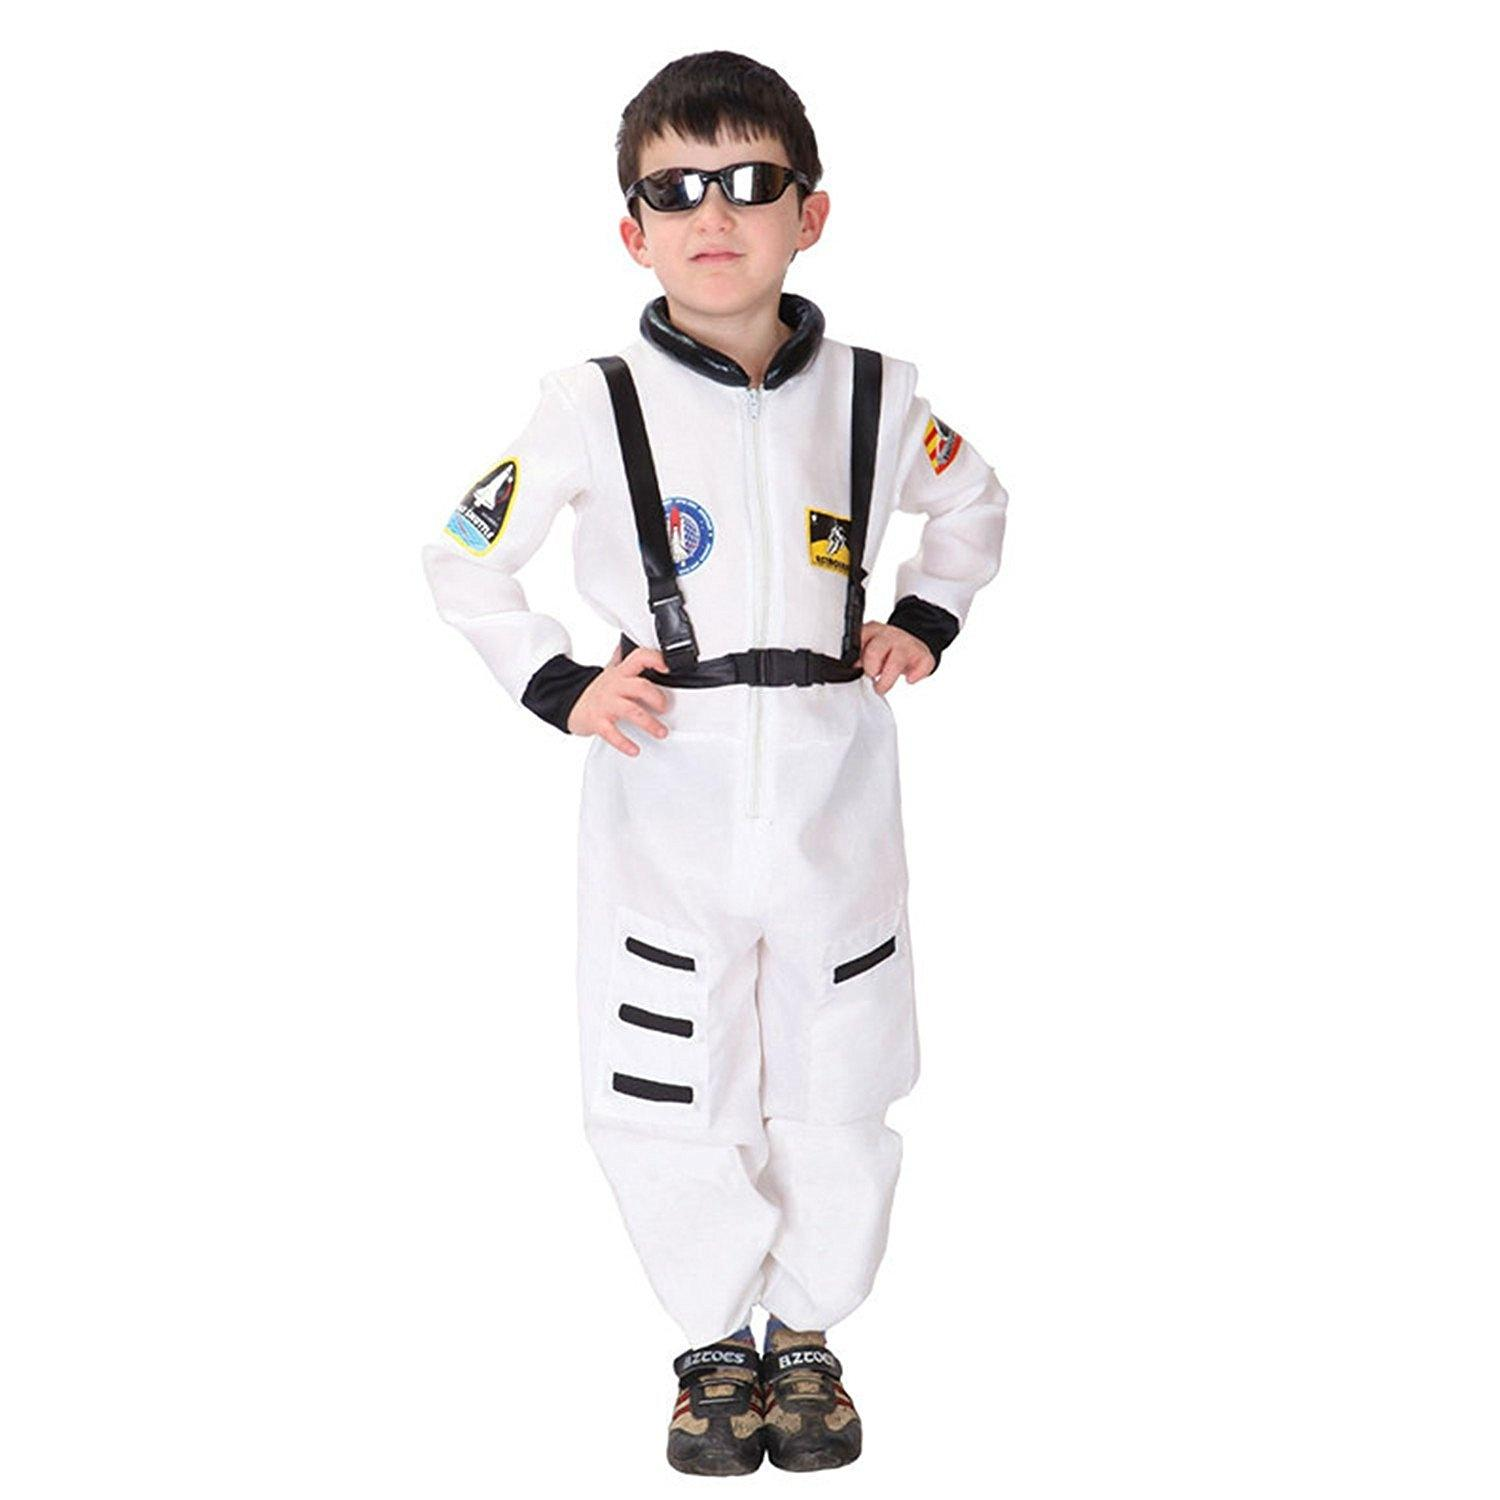 BOYS KIDS ASTRONAUT SPACESUIT SPACEMAN FANCY DRESS OUTFIT COSTUME 2-12 YEARS